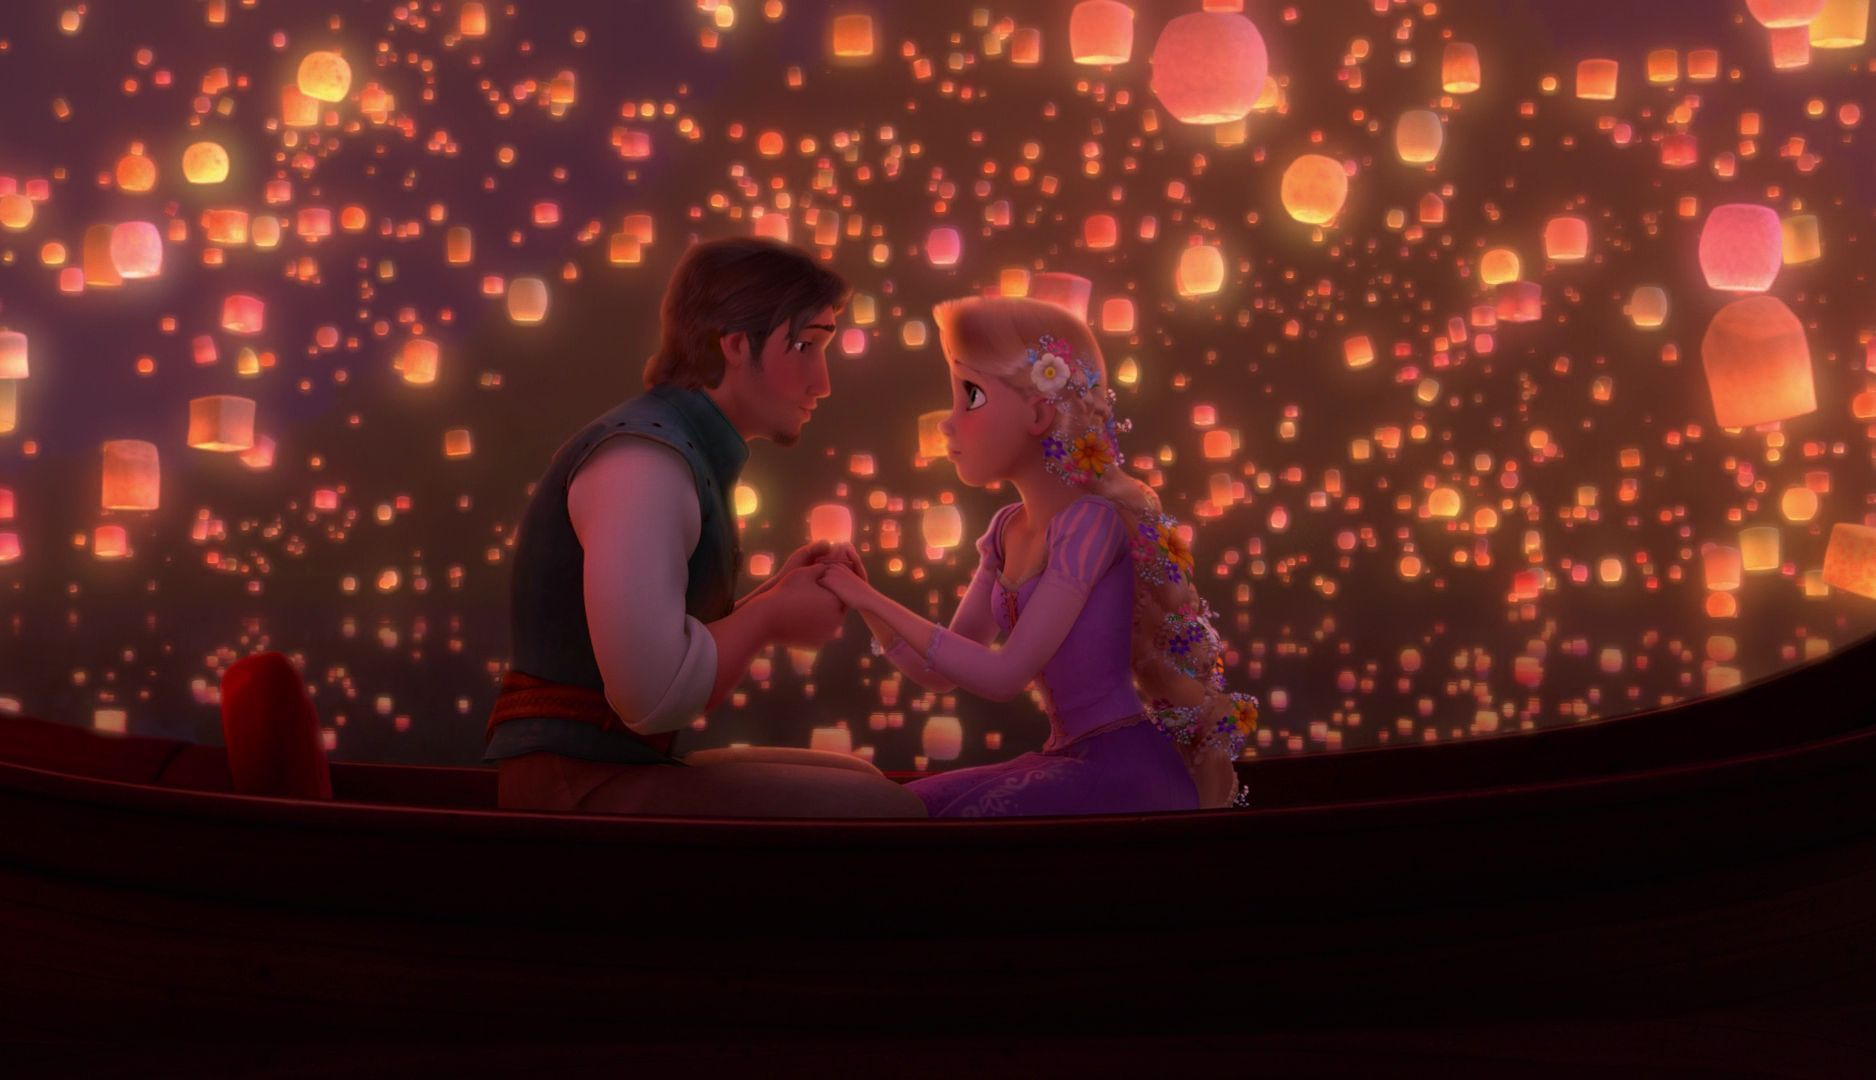 Tangled Images Full Movie Screencaps HD Wallpaper And Background Photos